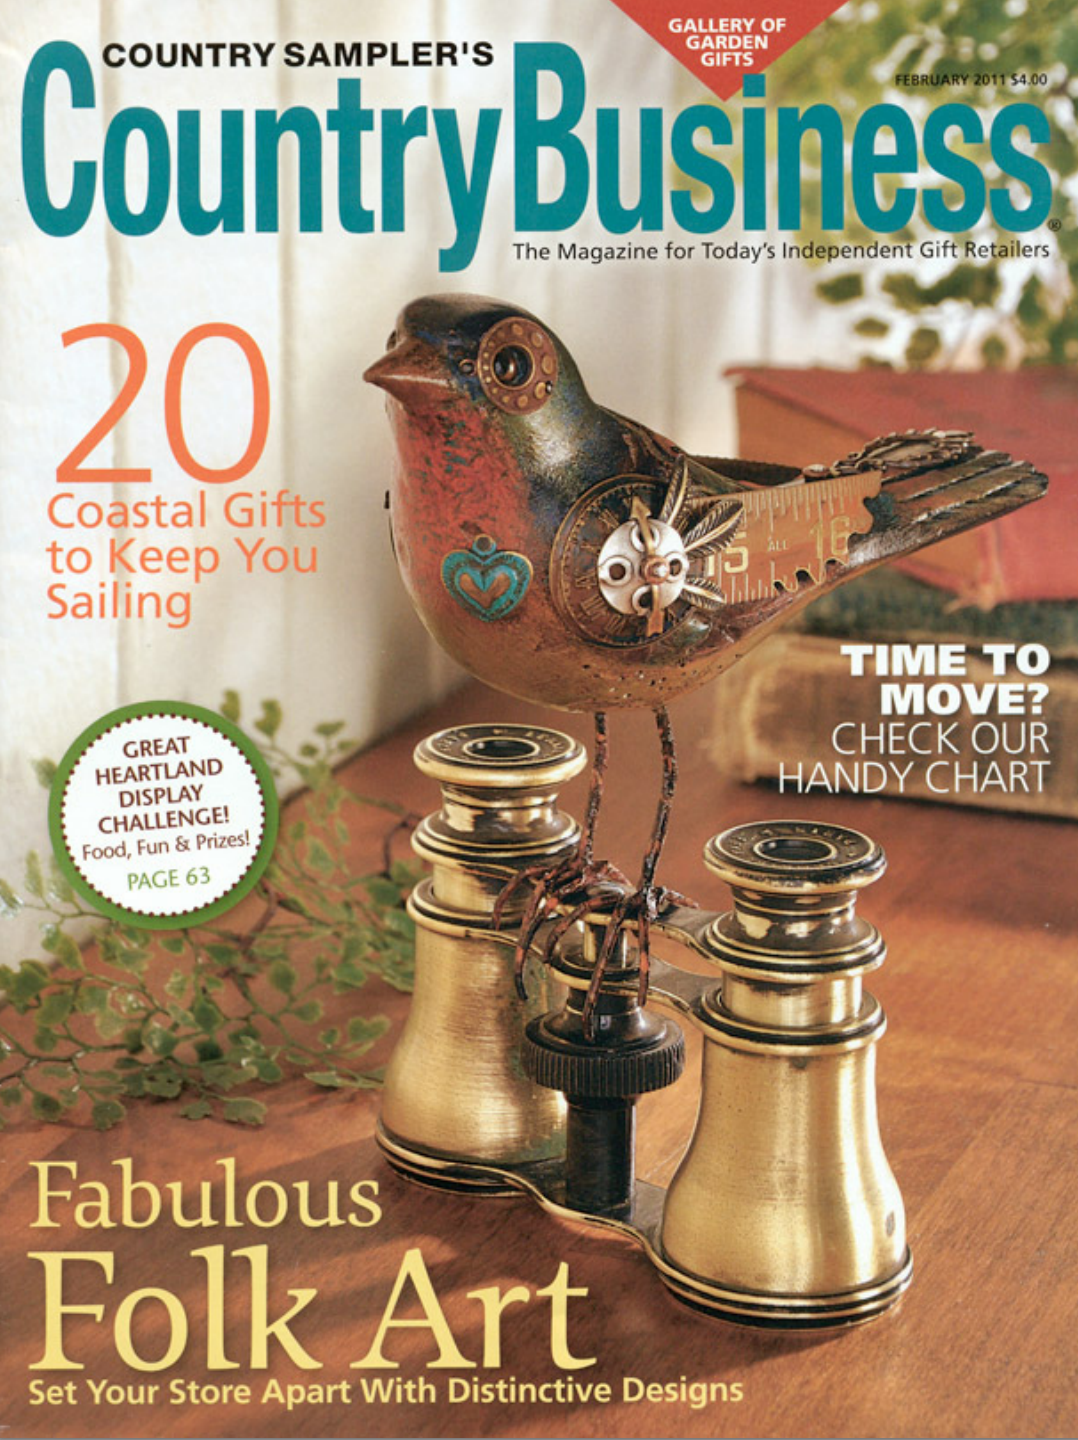 February 2011, Country Business